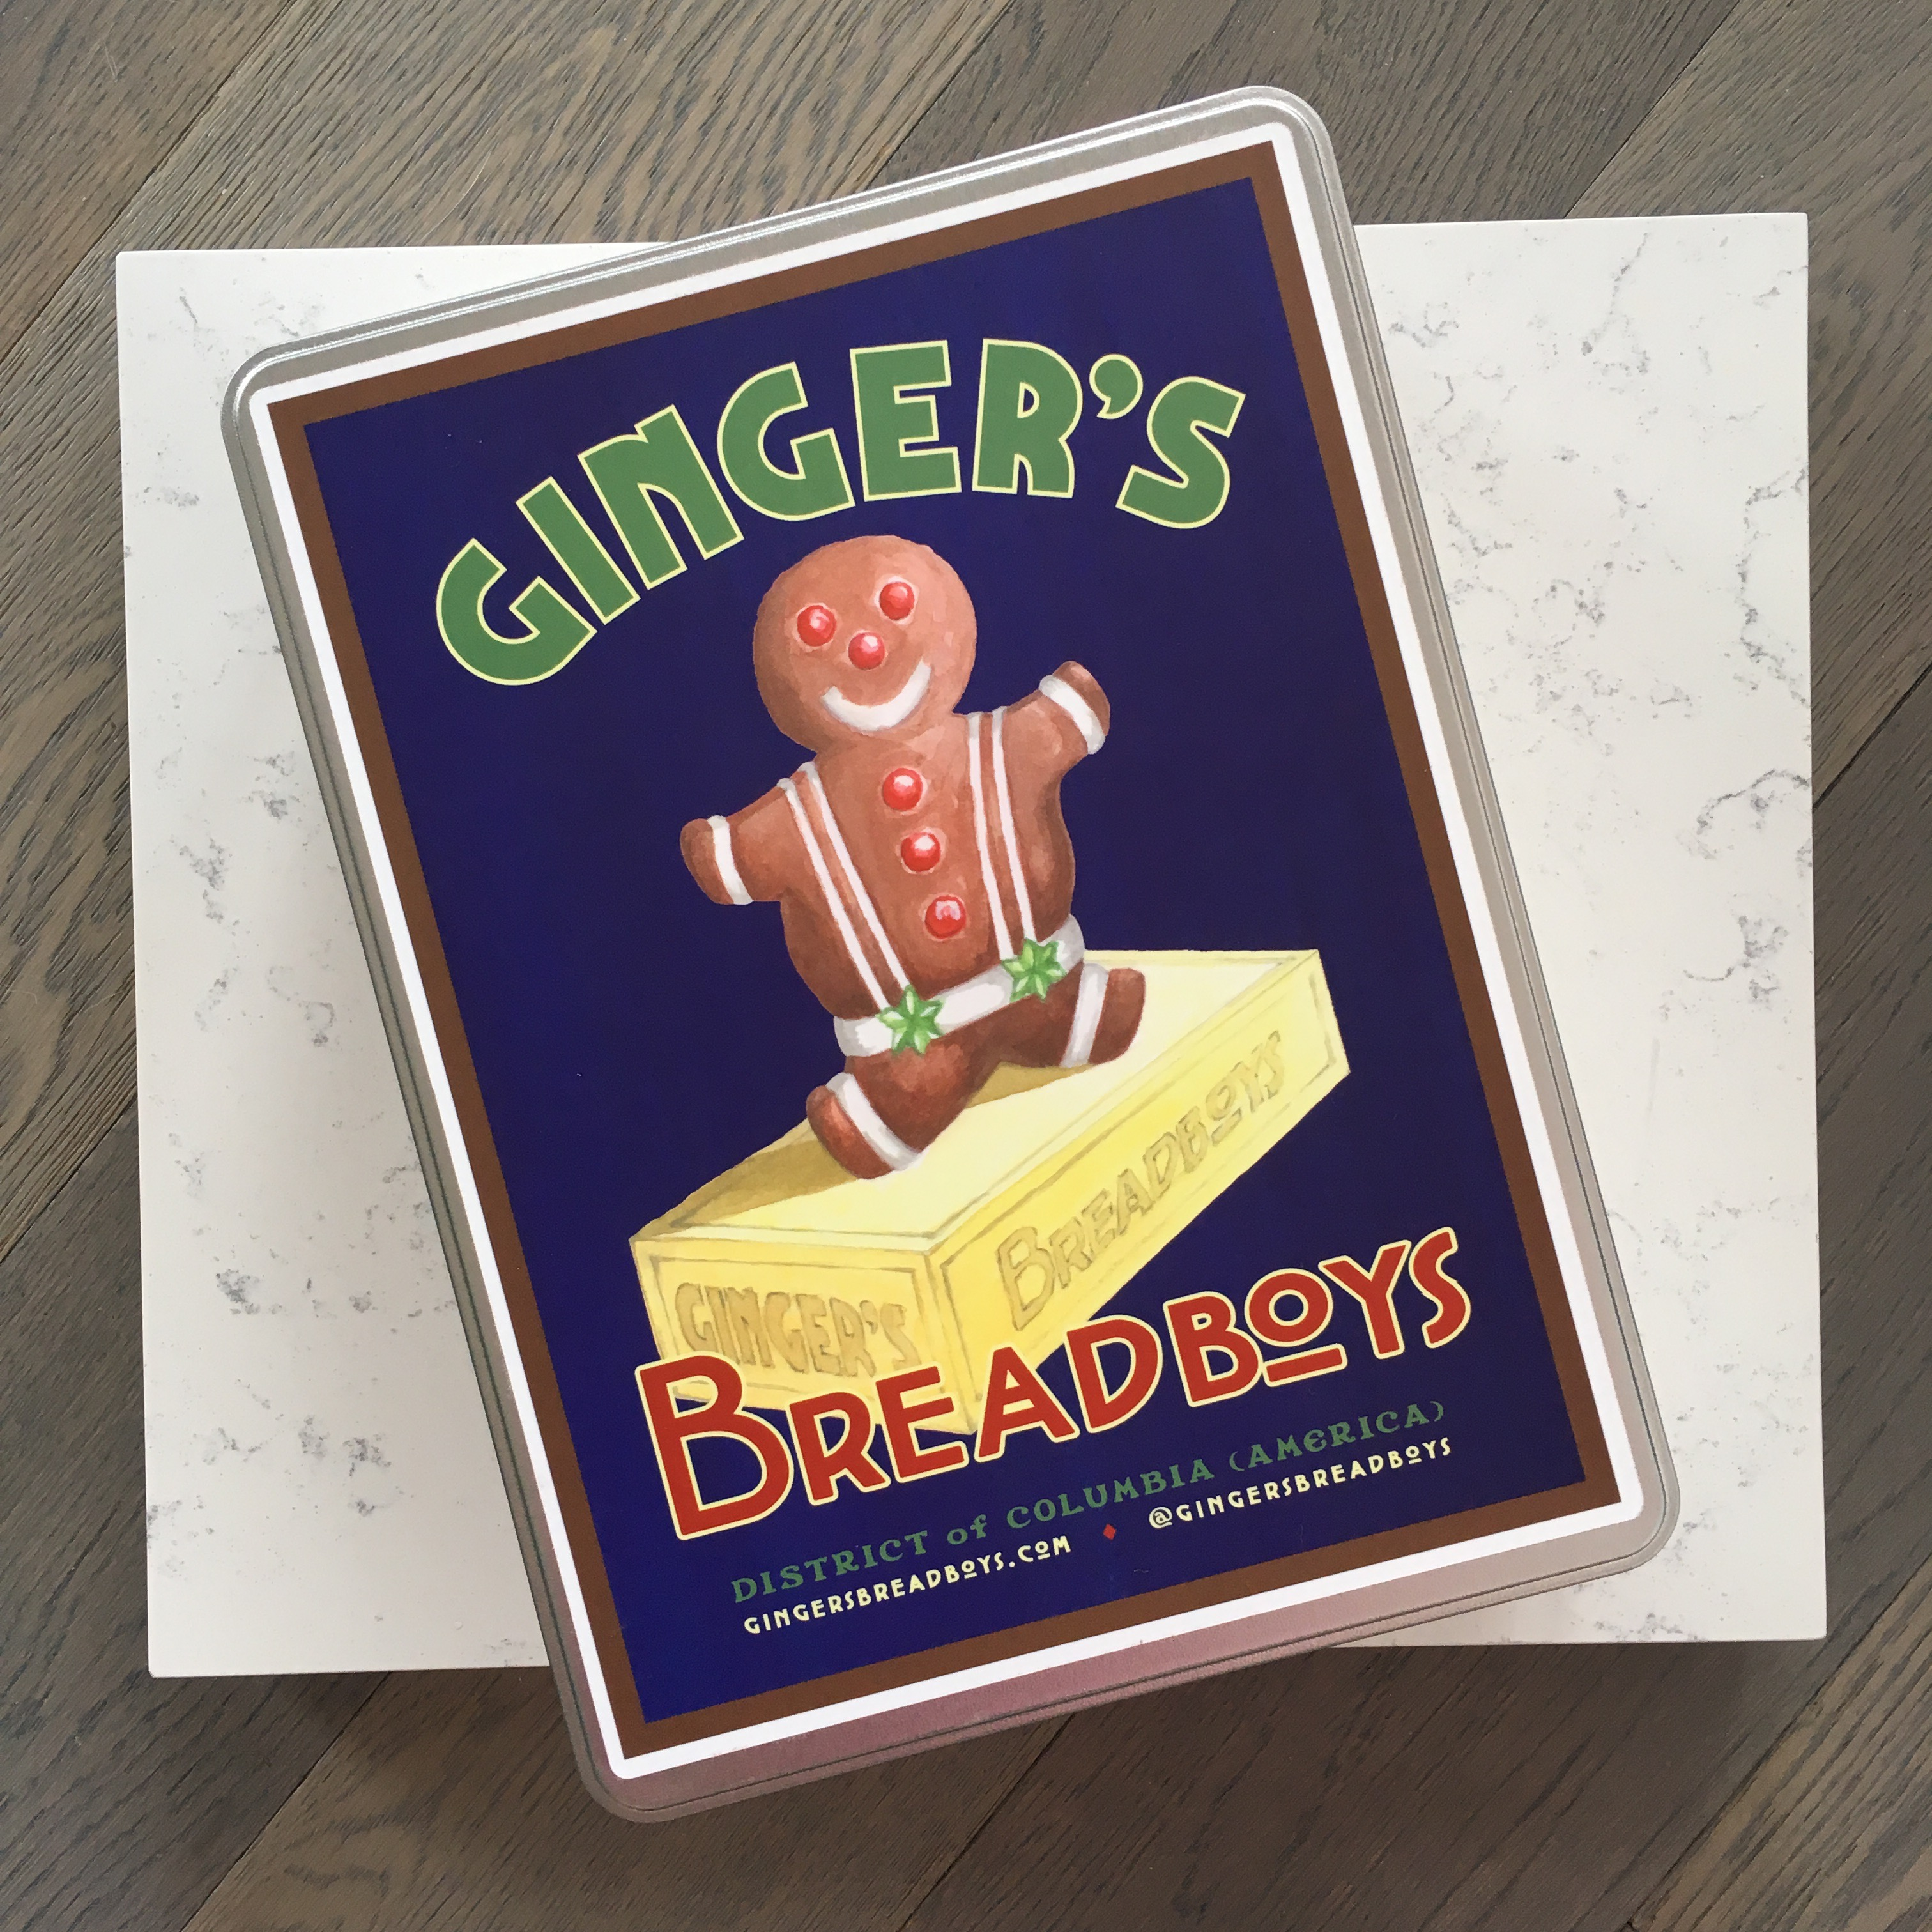 Ginger's Breadboys Gingerbread Cookie Kits